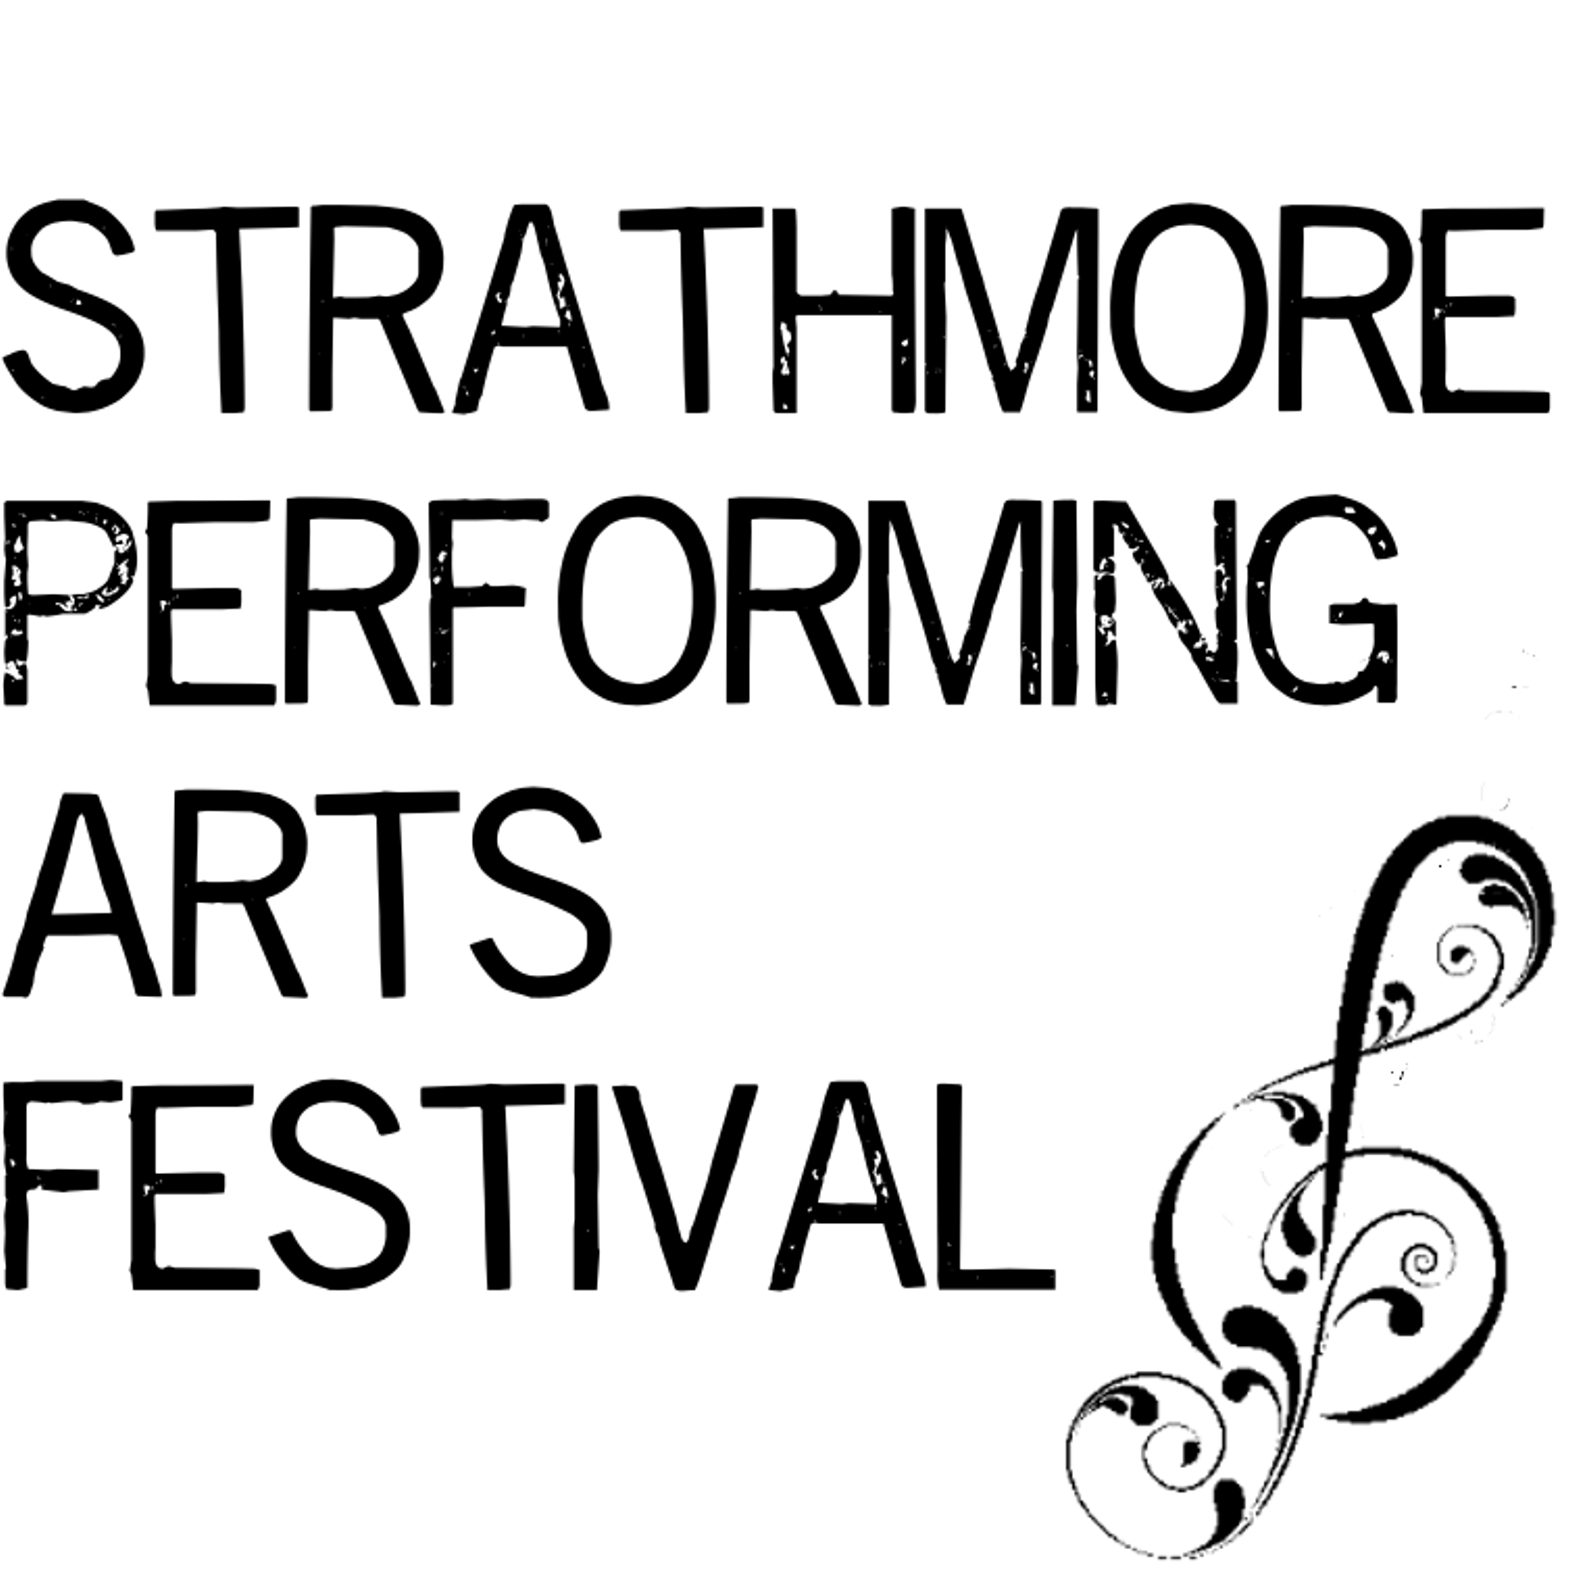 Strathmore Performing Arts Festival